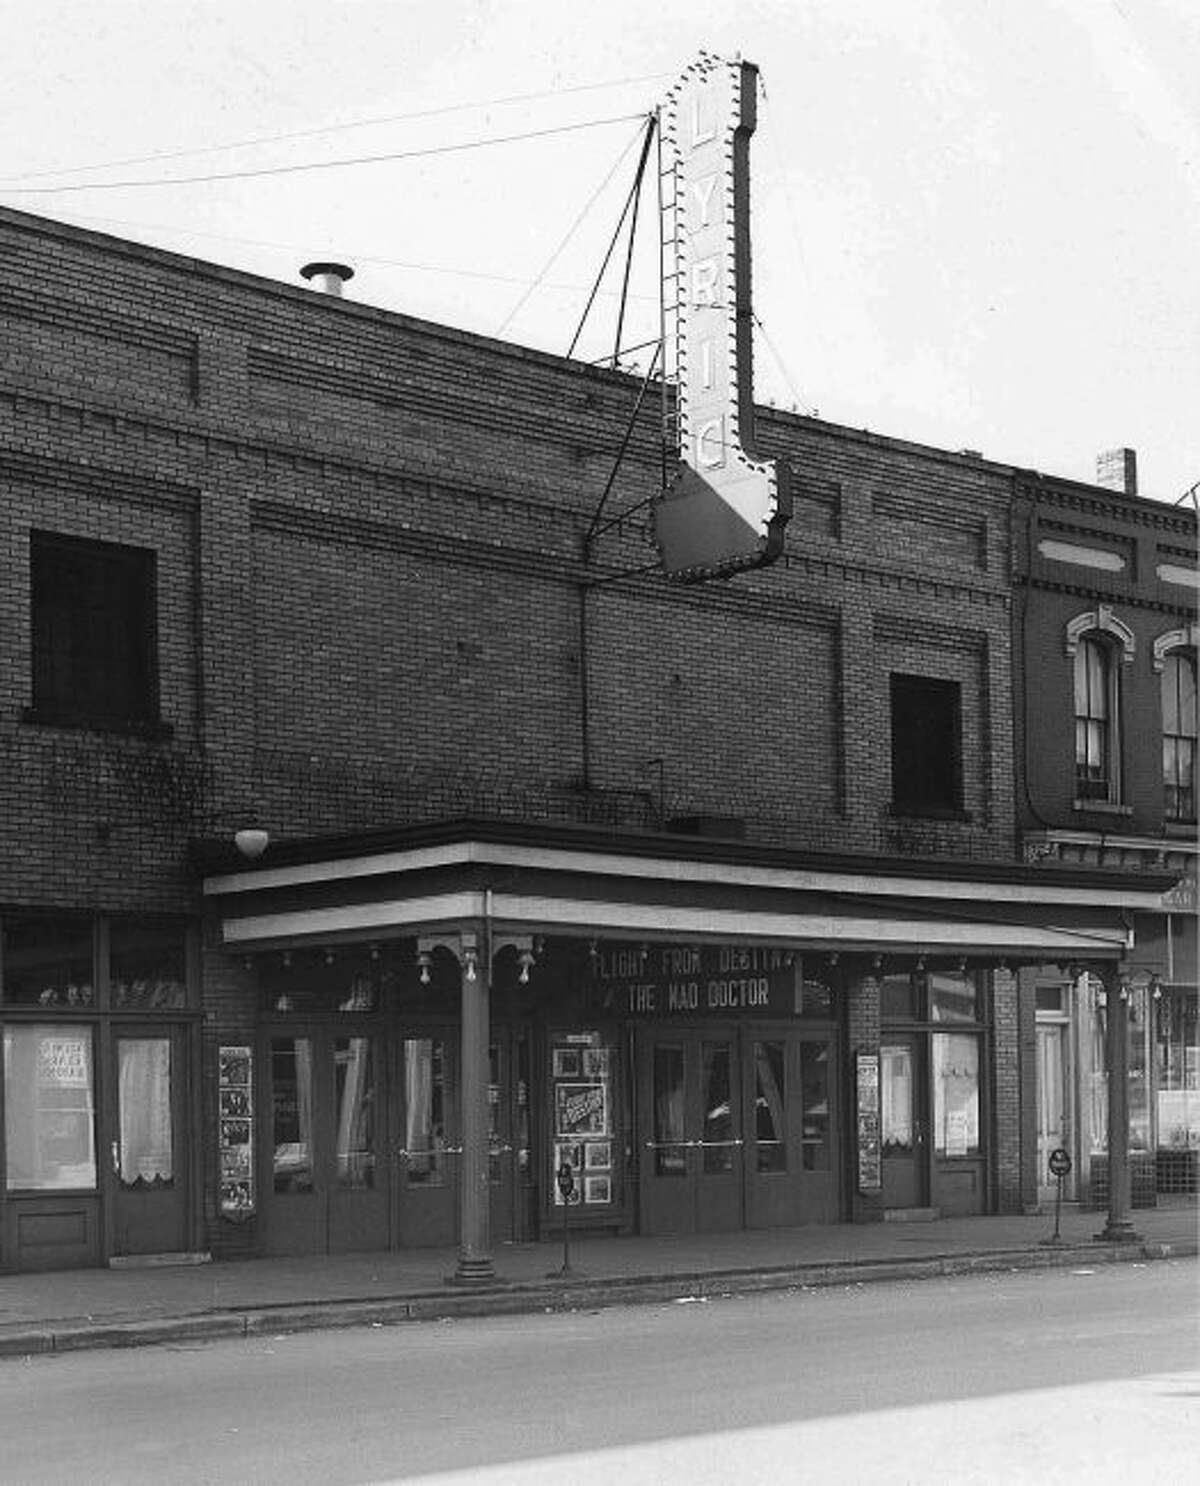 The Lyric Theatre was a popular place to view movies in downtown Manistee in the 1940s. It would later become the home of the Salvation Army for many years.